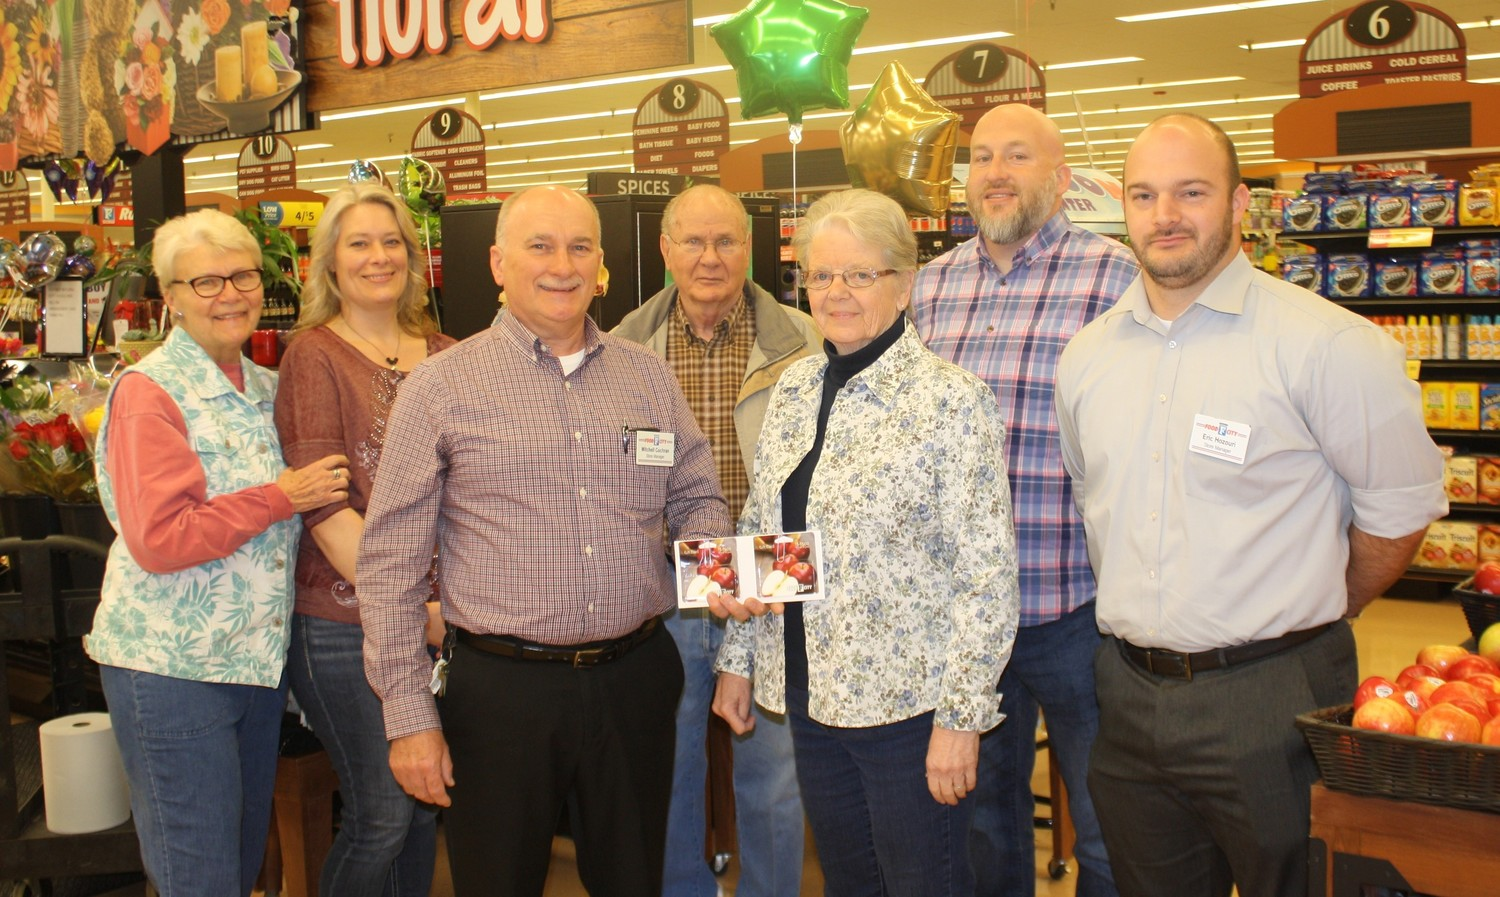 WATERVILLE BAPTIST Church was the recipient of funds from a special promotion by Cleveland's two Food City stores held during the 2017 holidays. Food City South Store Manager Mitch Cochran, third from left, and North Store Manager Eric Hozouri, right, presented the church's food bank with more than $16,000 in food coupons. At Friday's presentation were, from left, Kathy Sefcik, Kelita Puckett, Cochran, David Scoggins, Food Bank Director Kay Houk, The Rev. Coby Goins and Hozouri.